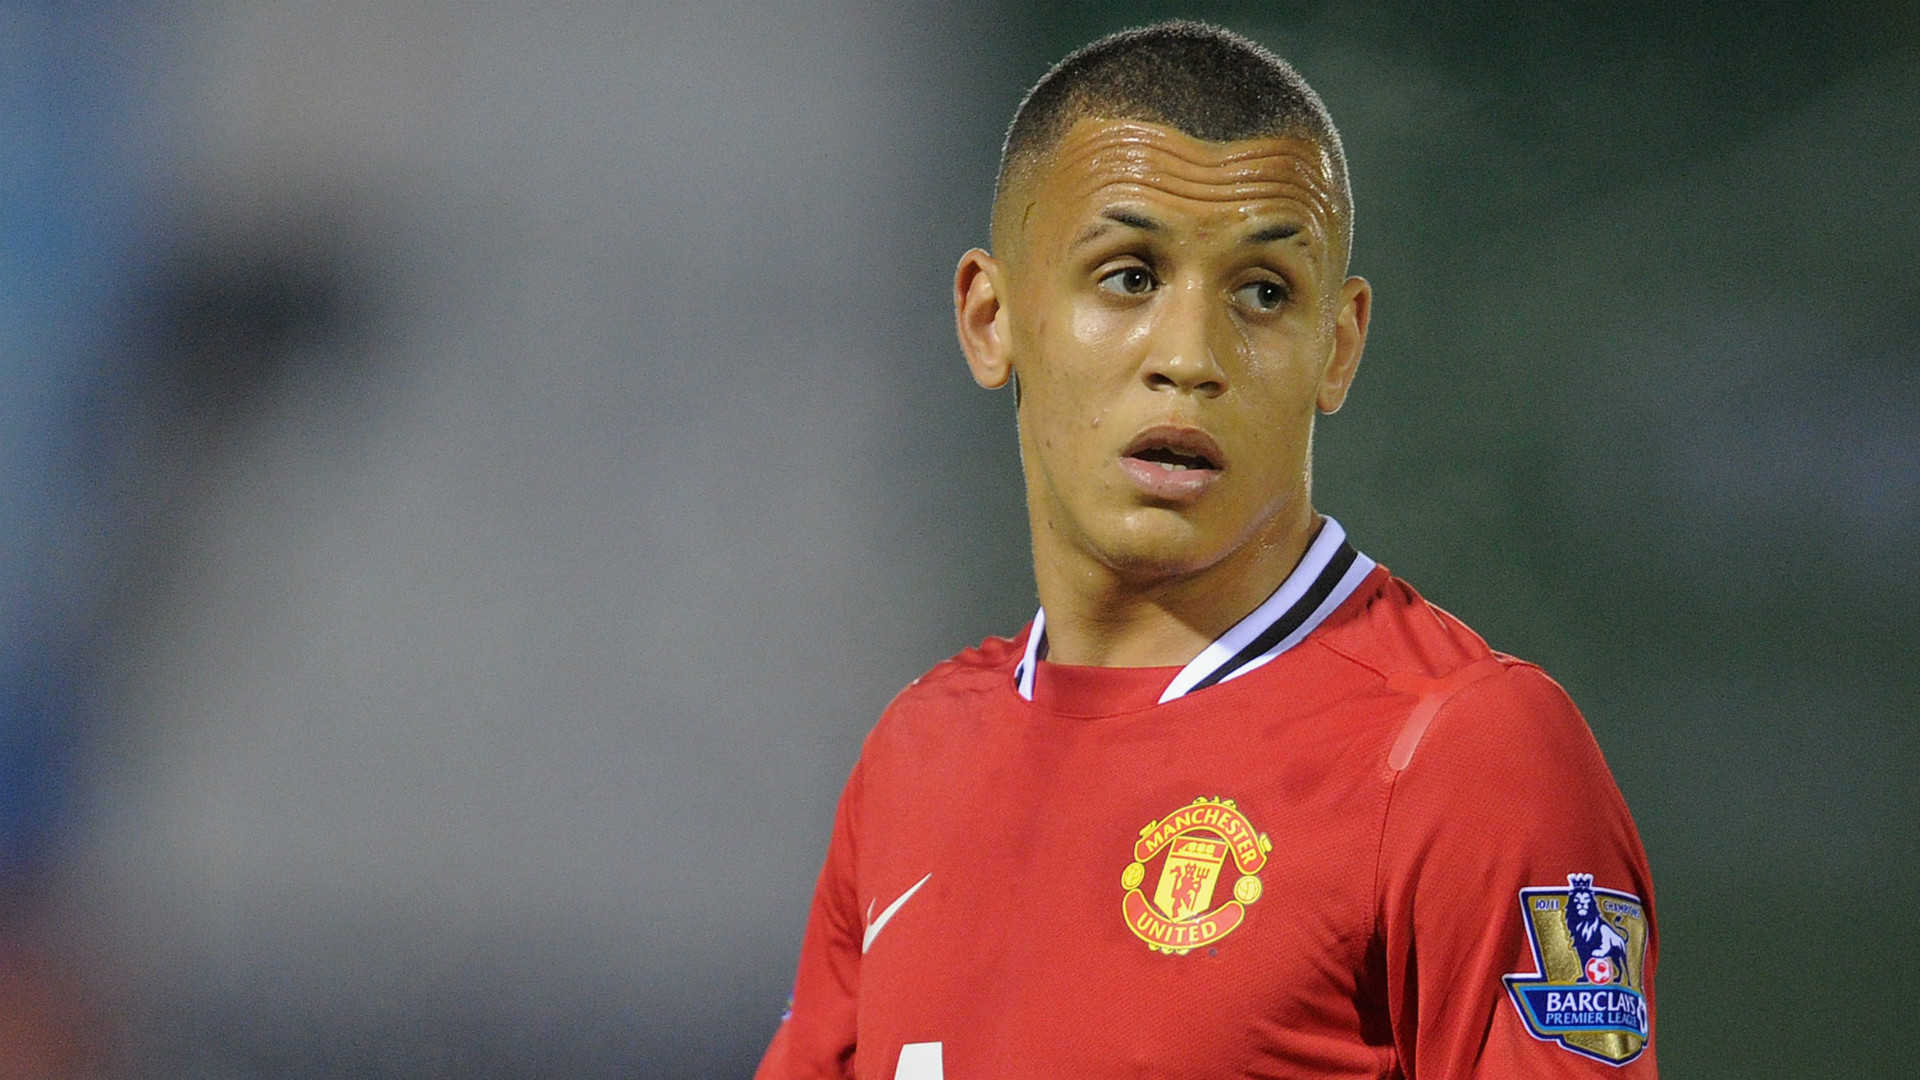 Ravel Morrison, England's poster boy for wasted potential